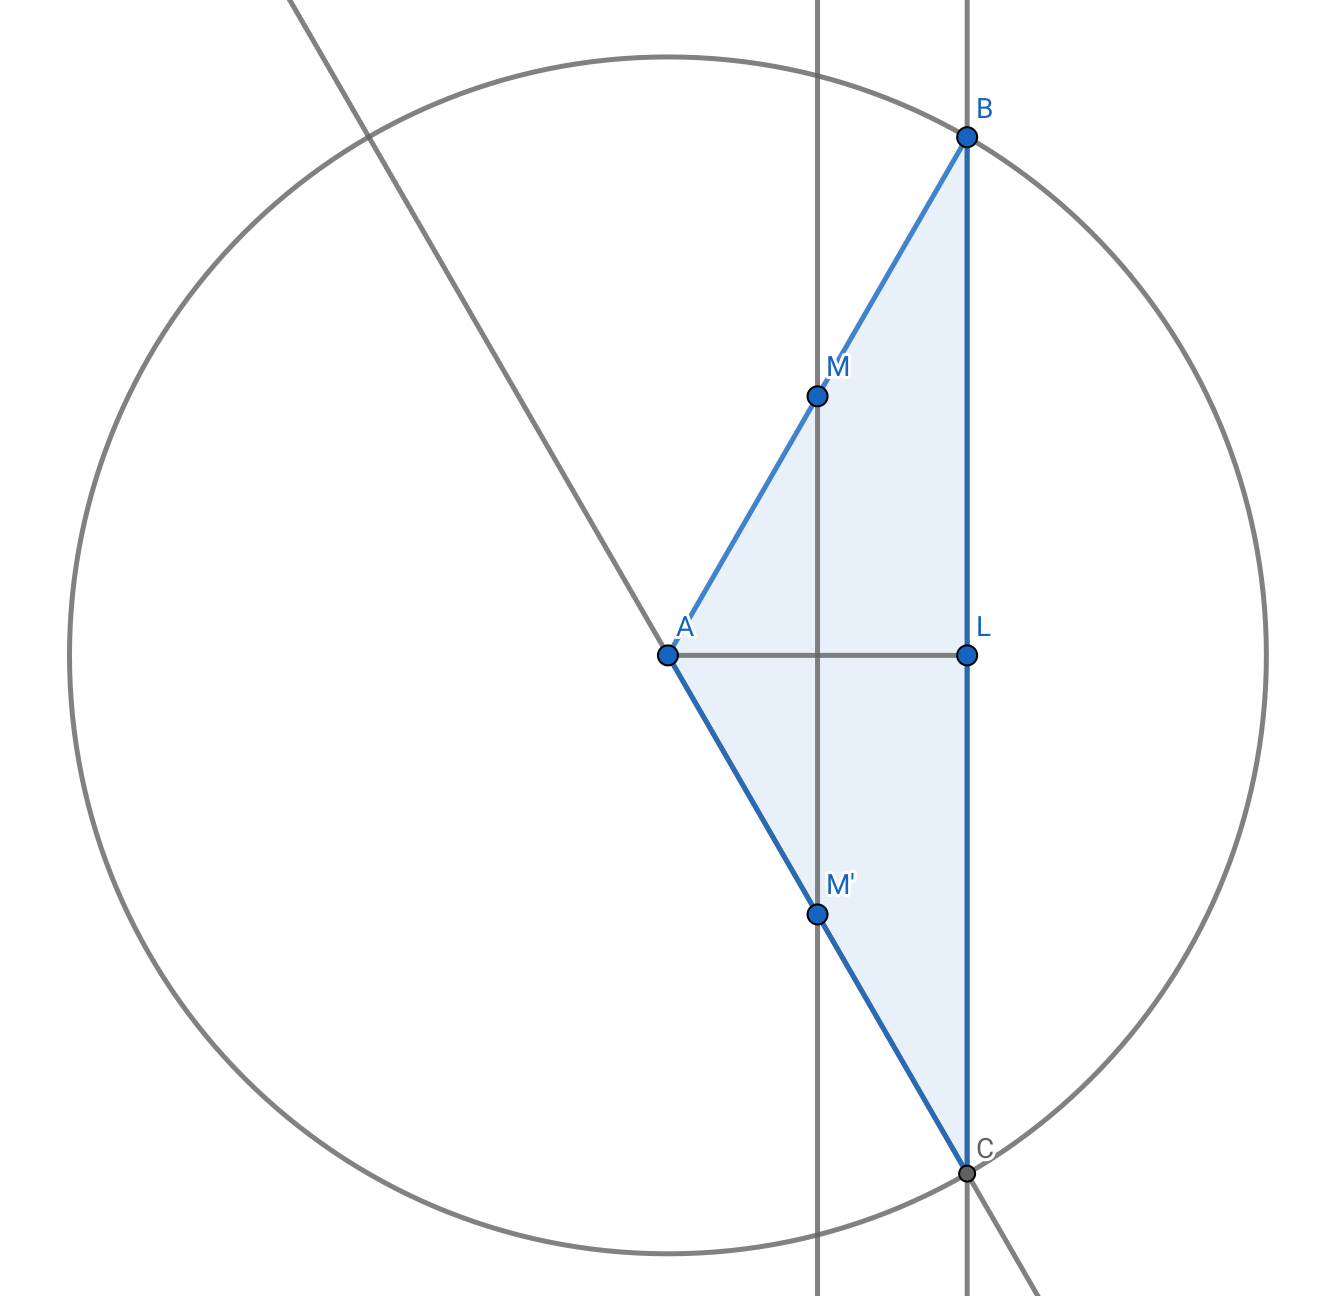 In Abc Al Is An Angle Bisector L Bc Point M Ab So